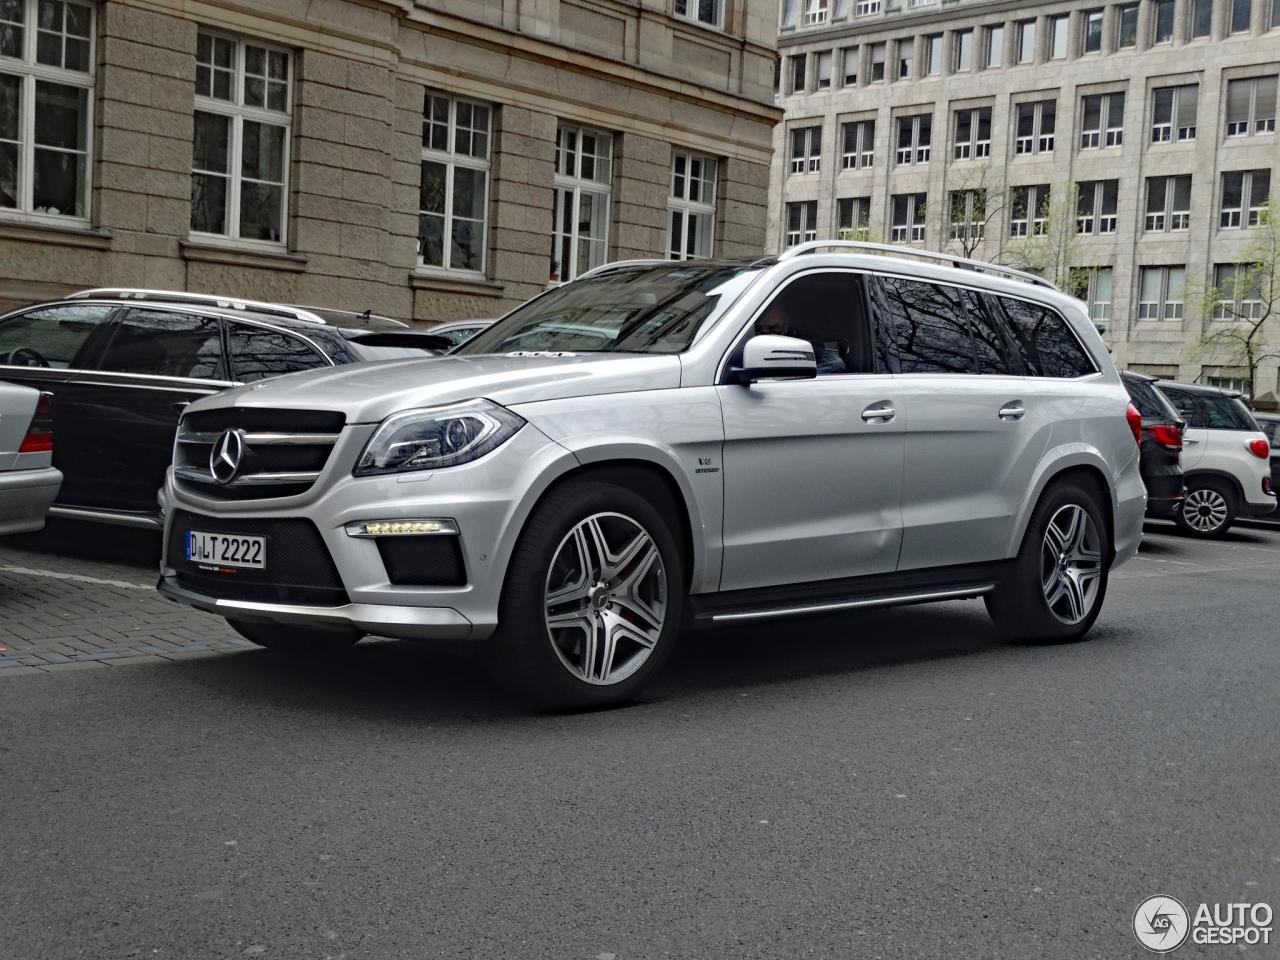 Mercedes benz gl 63 amg x166 12 april 2017 autogespot for 2017 mercedes benz gl450